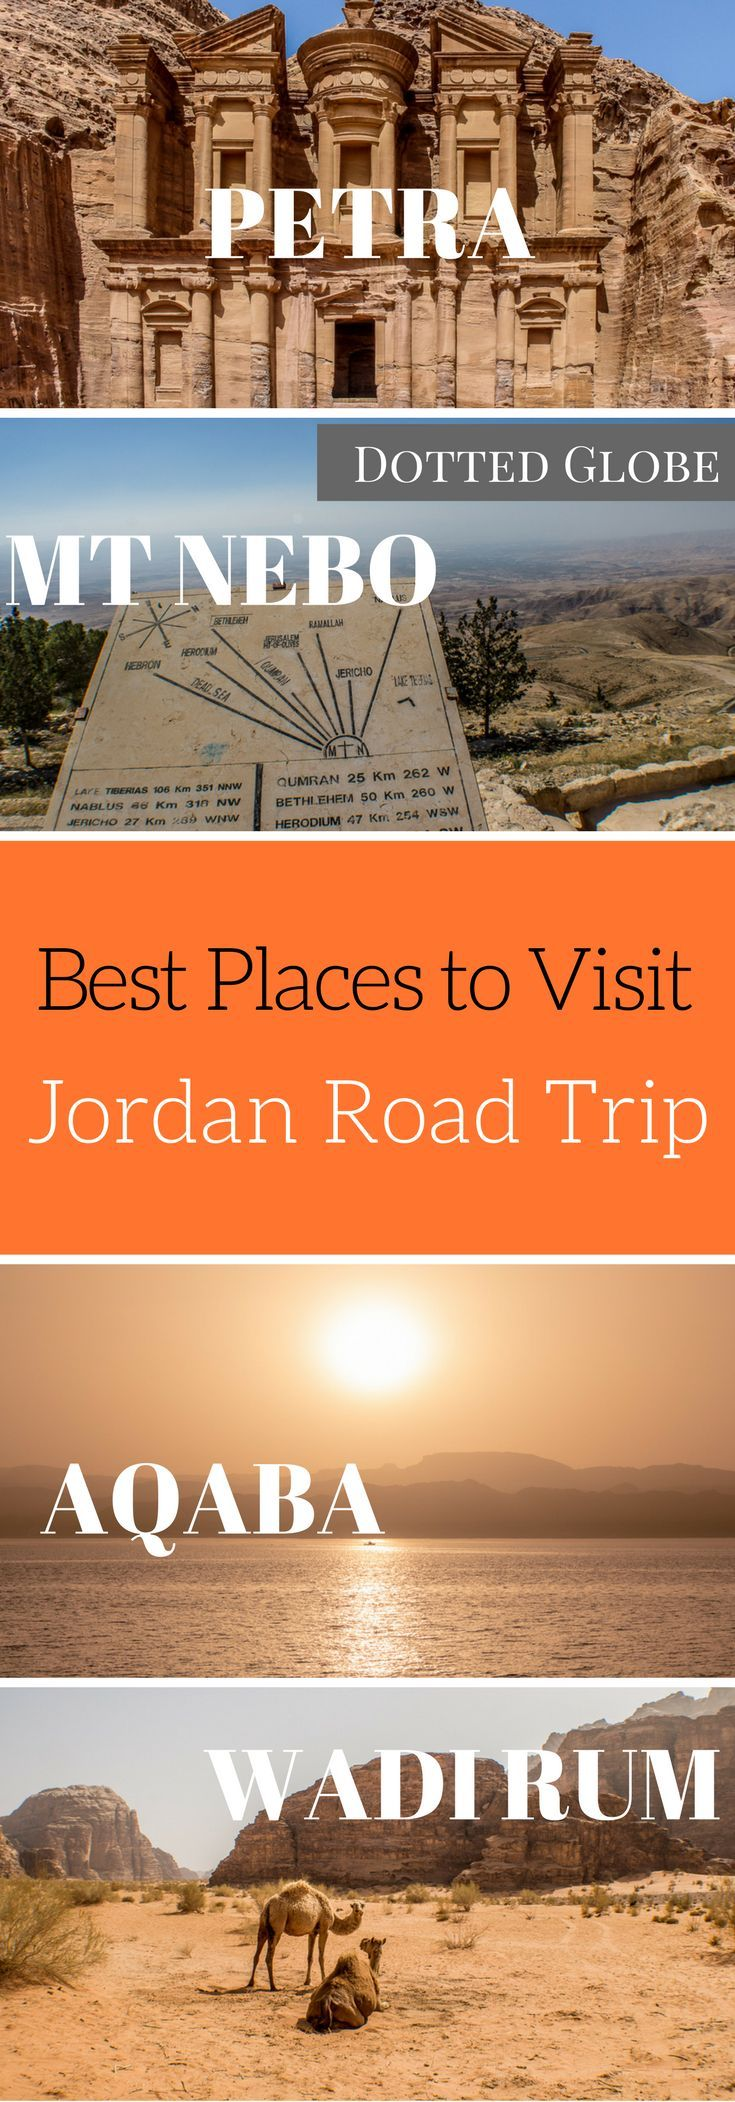 Dotted Globe S Jordan Itinerary Covers Petra Dead Sea Wadi Rum Aqaba Jerash Amman And Other Major Tourist Attractions And Is P Jordan Travel Wadi Rum Trip